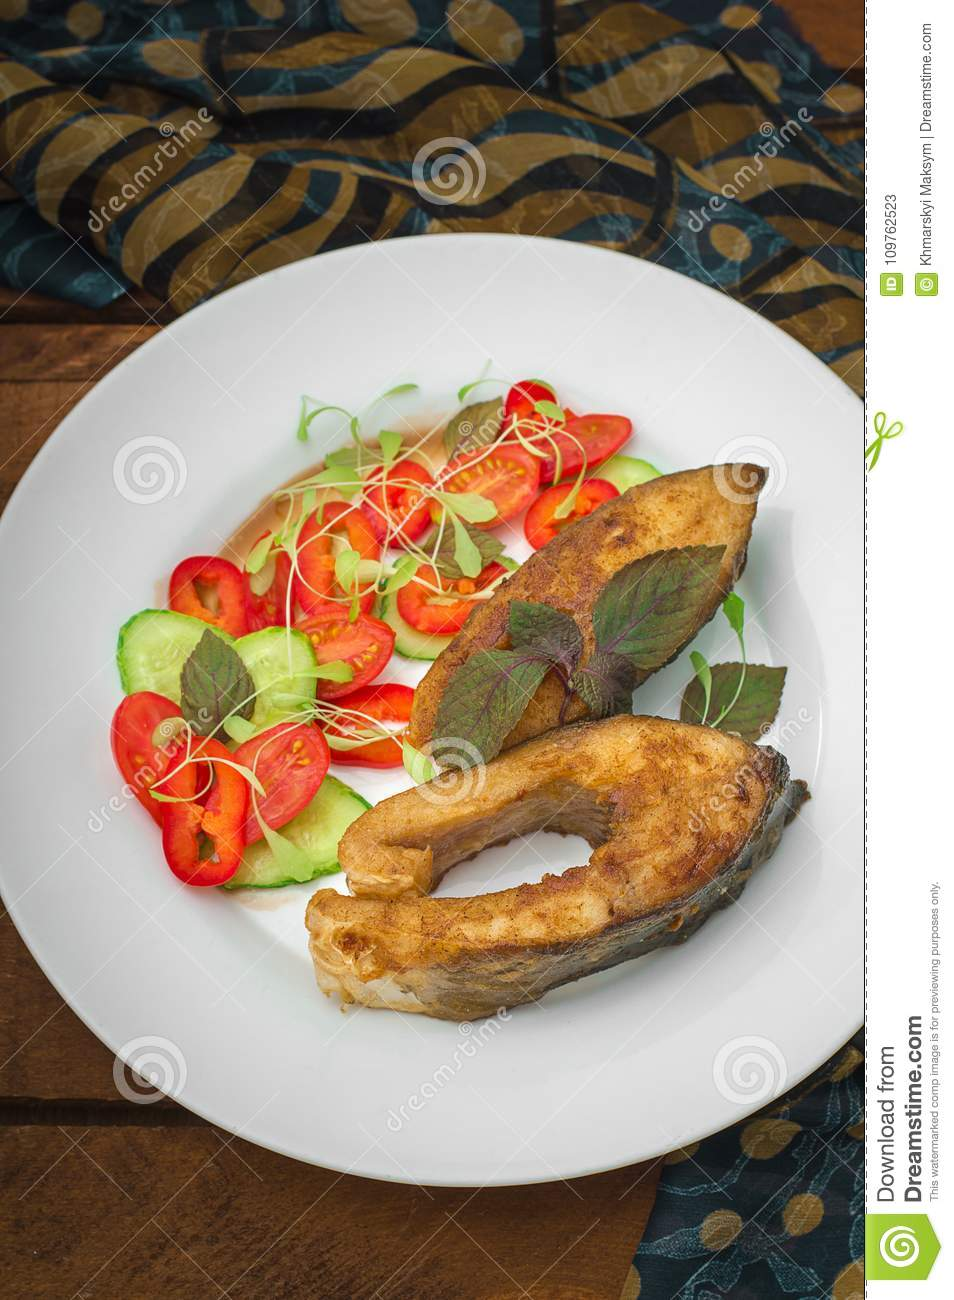 Grilled Fish Steak With Vegetables On Plate Tomatoes Microgran Cucumber Tasty And Healthy Dinner Wooden Rustic Background Top View